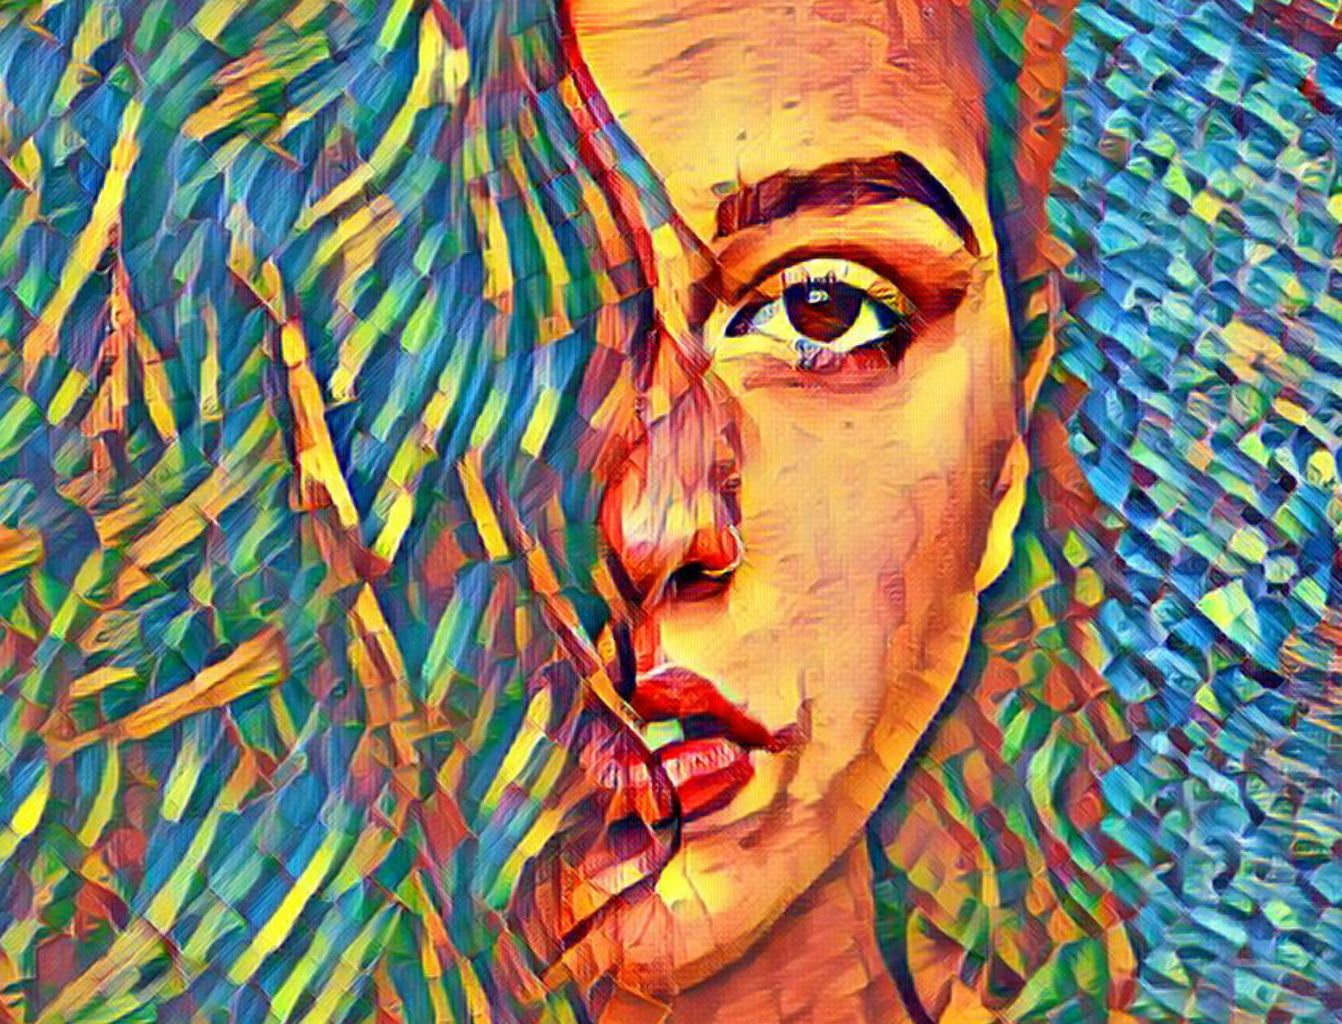 Photo of a girl edited with picsart magic tool